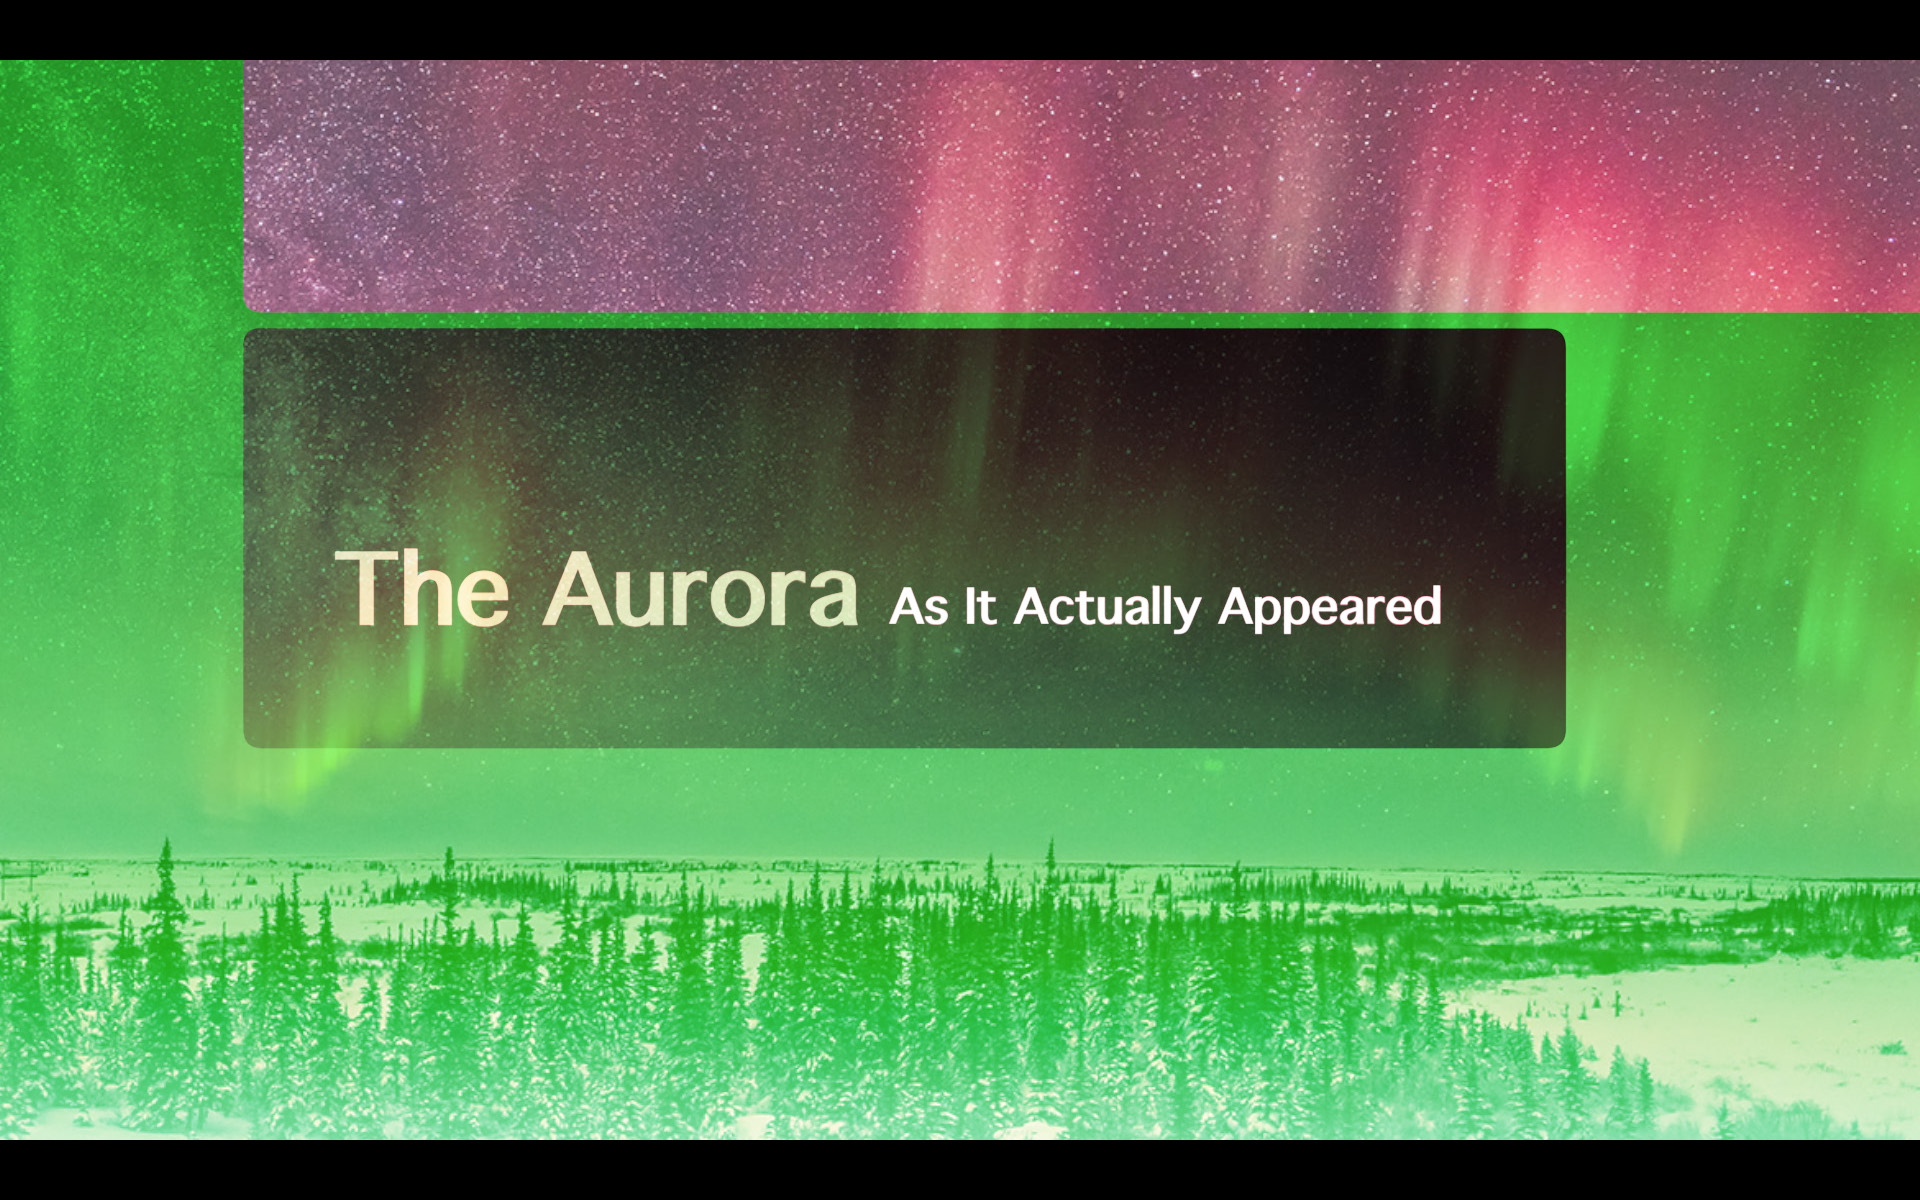 Aurora As It Appeared Title